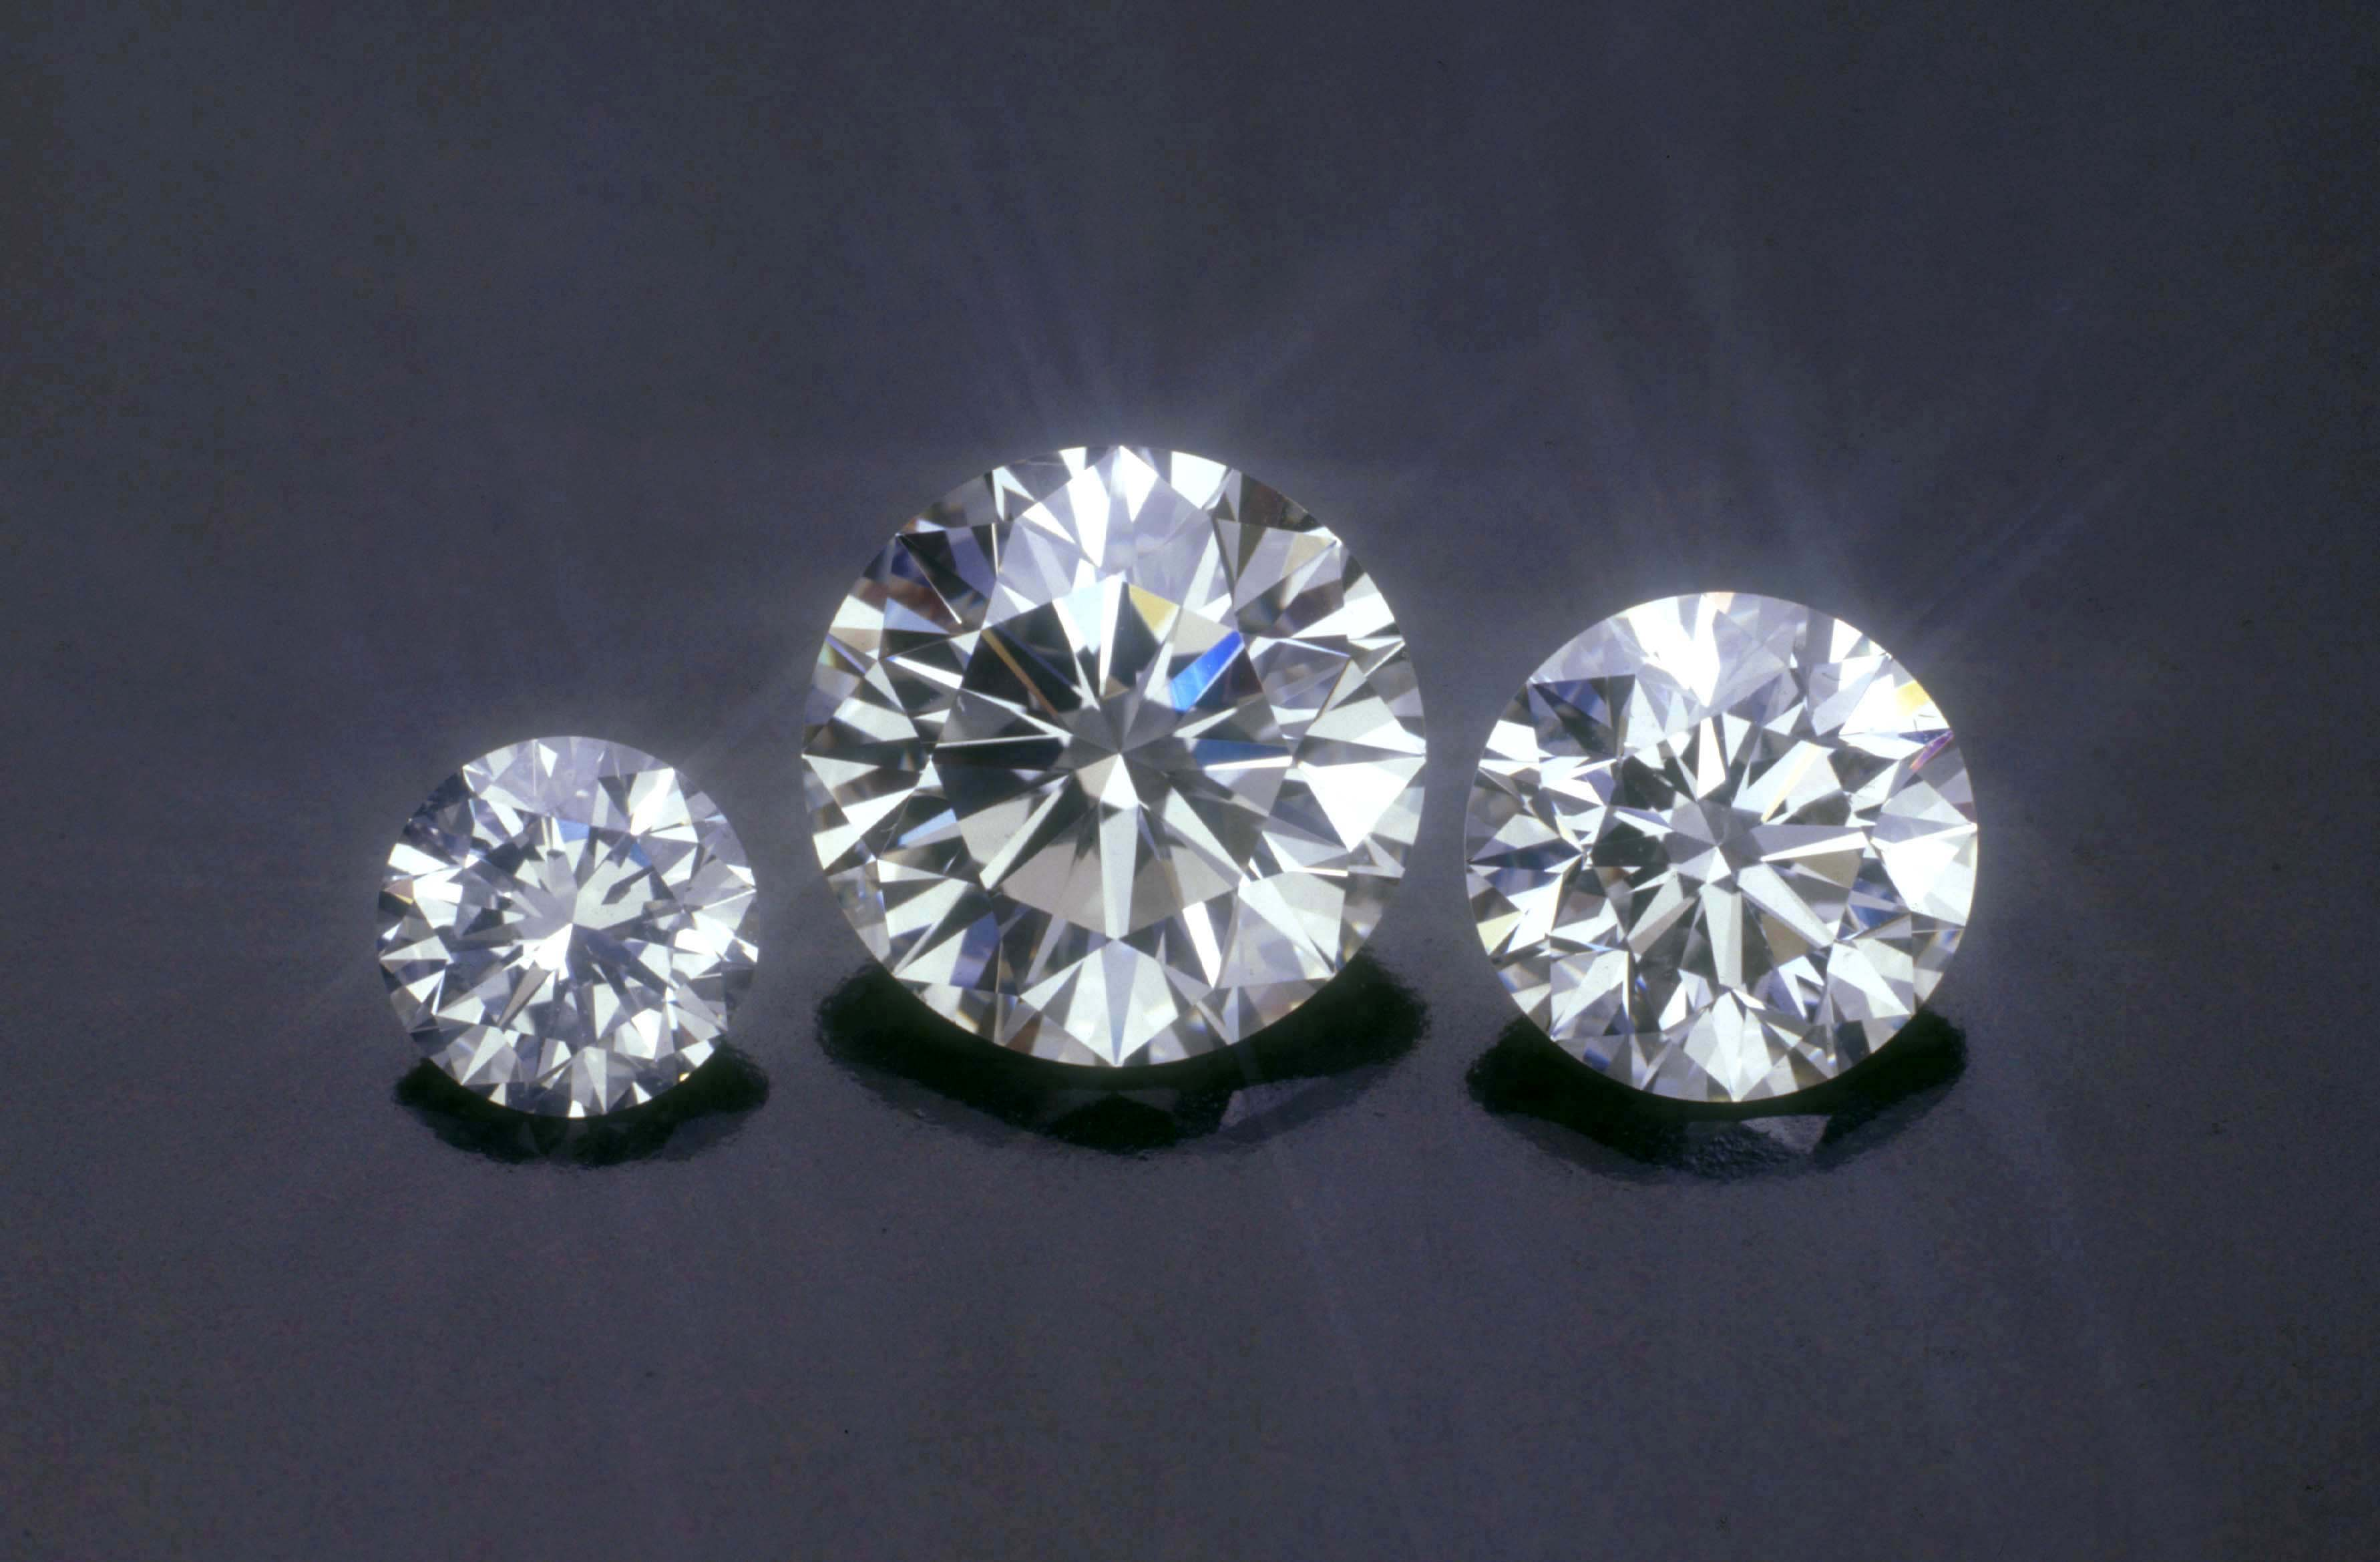 The eureka diamond - When Businessmen Realised That They Could Make Money Off Of Diamonds They Started Mining Companies To Extract The Diamonds From Places Such As South Africa